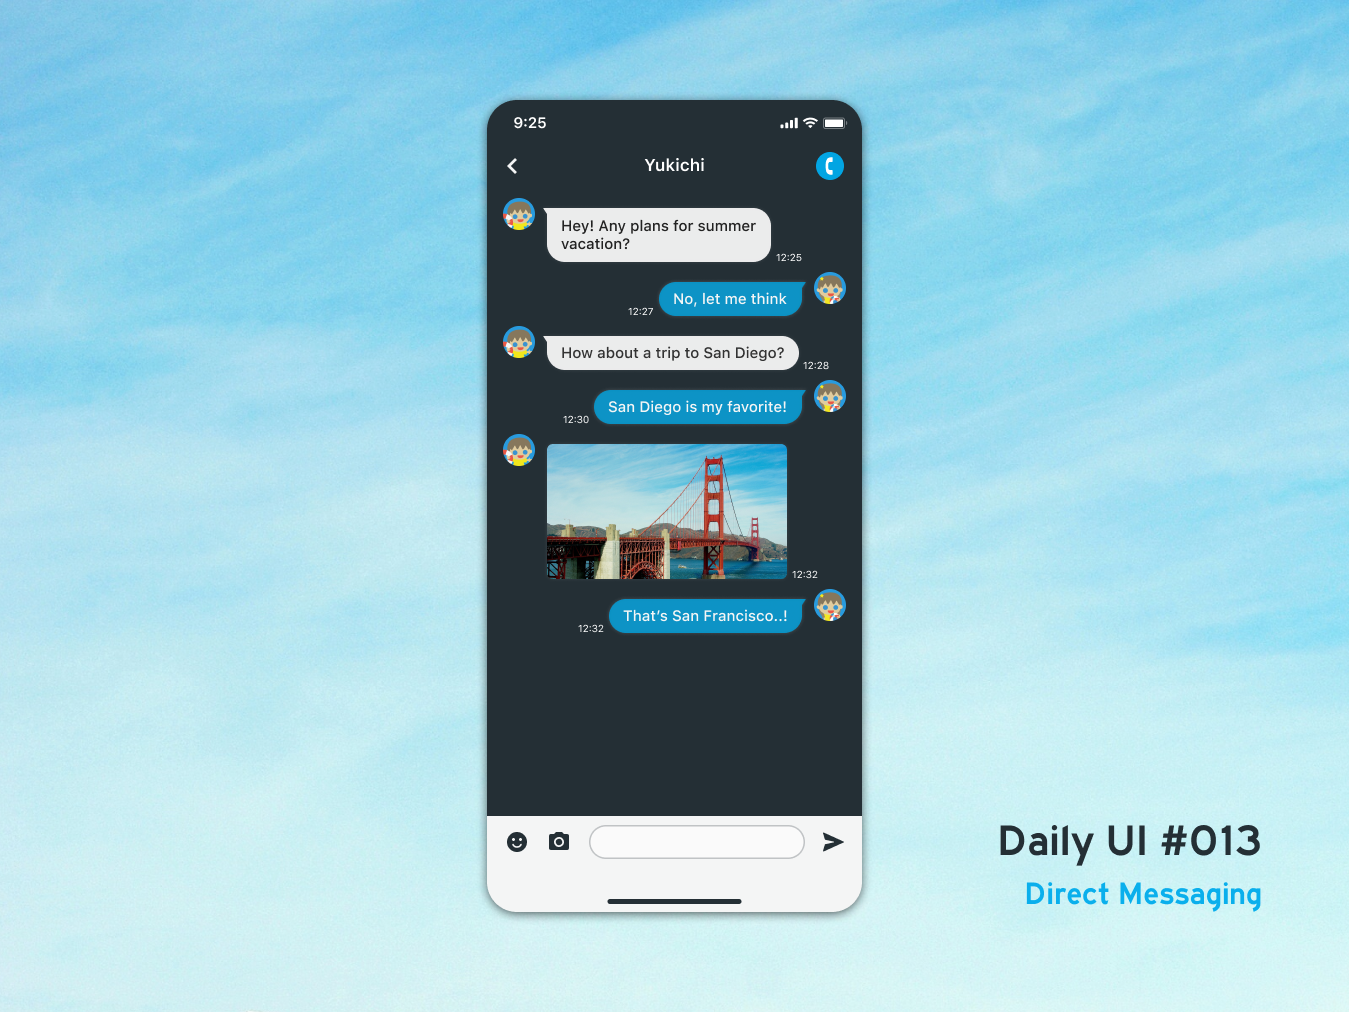 Daily UI #013 daily ui 013 daily challange